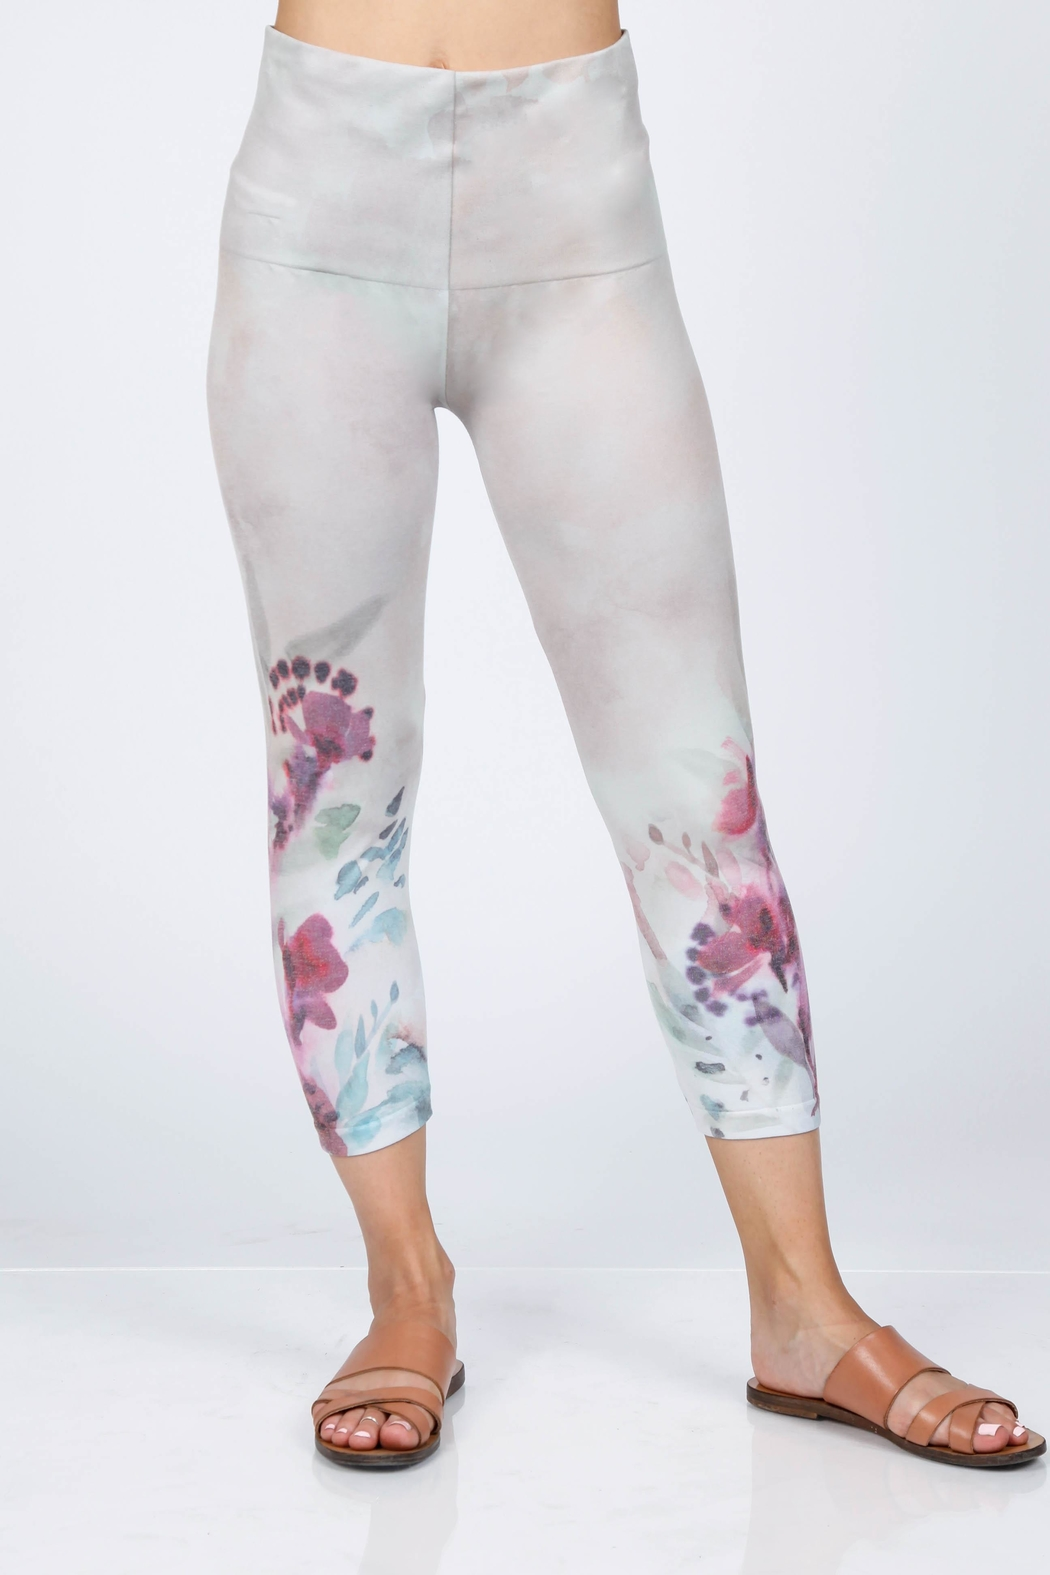 M. Rena Cropped Printed Leggings - Main Image